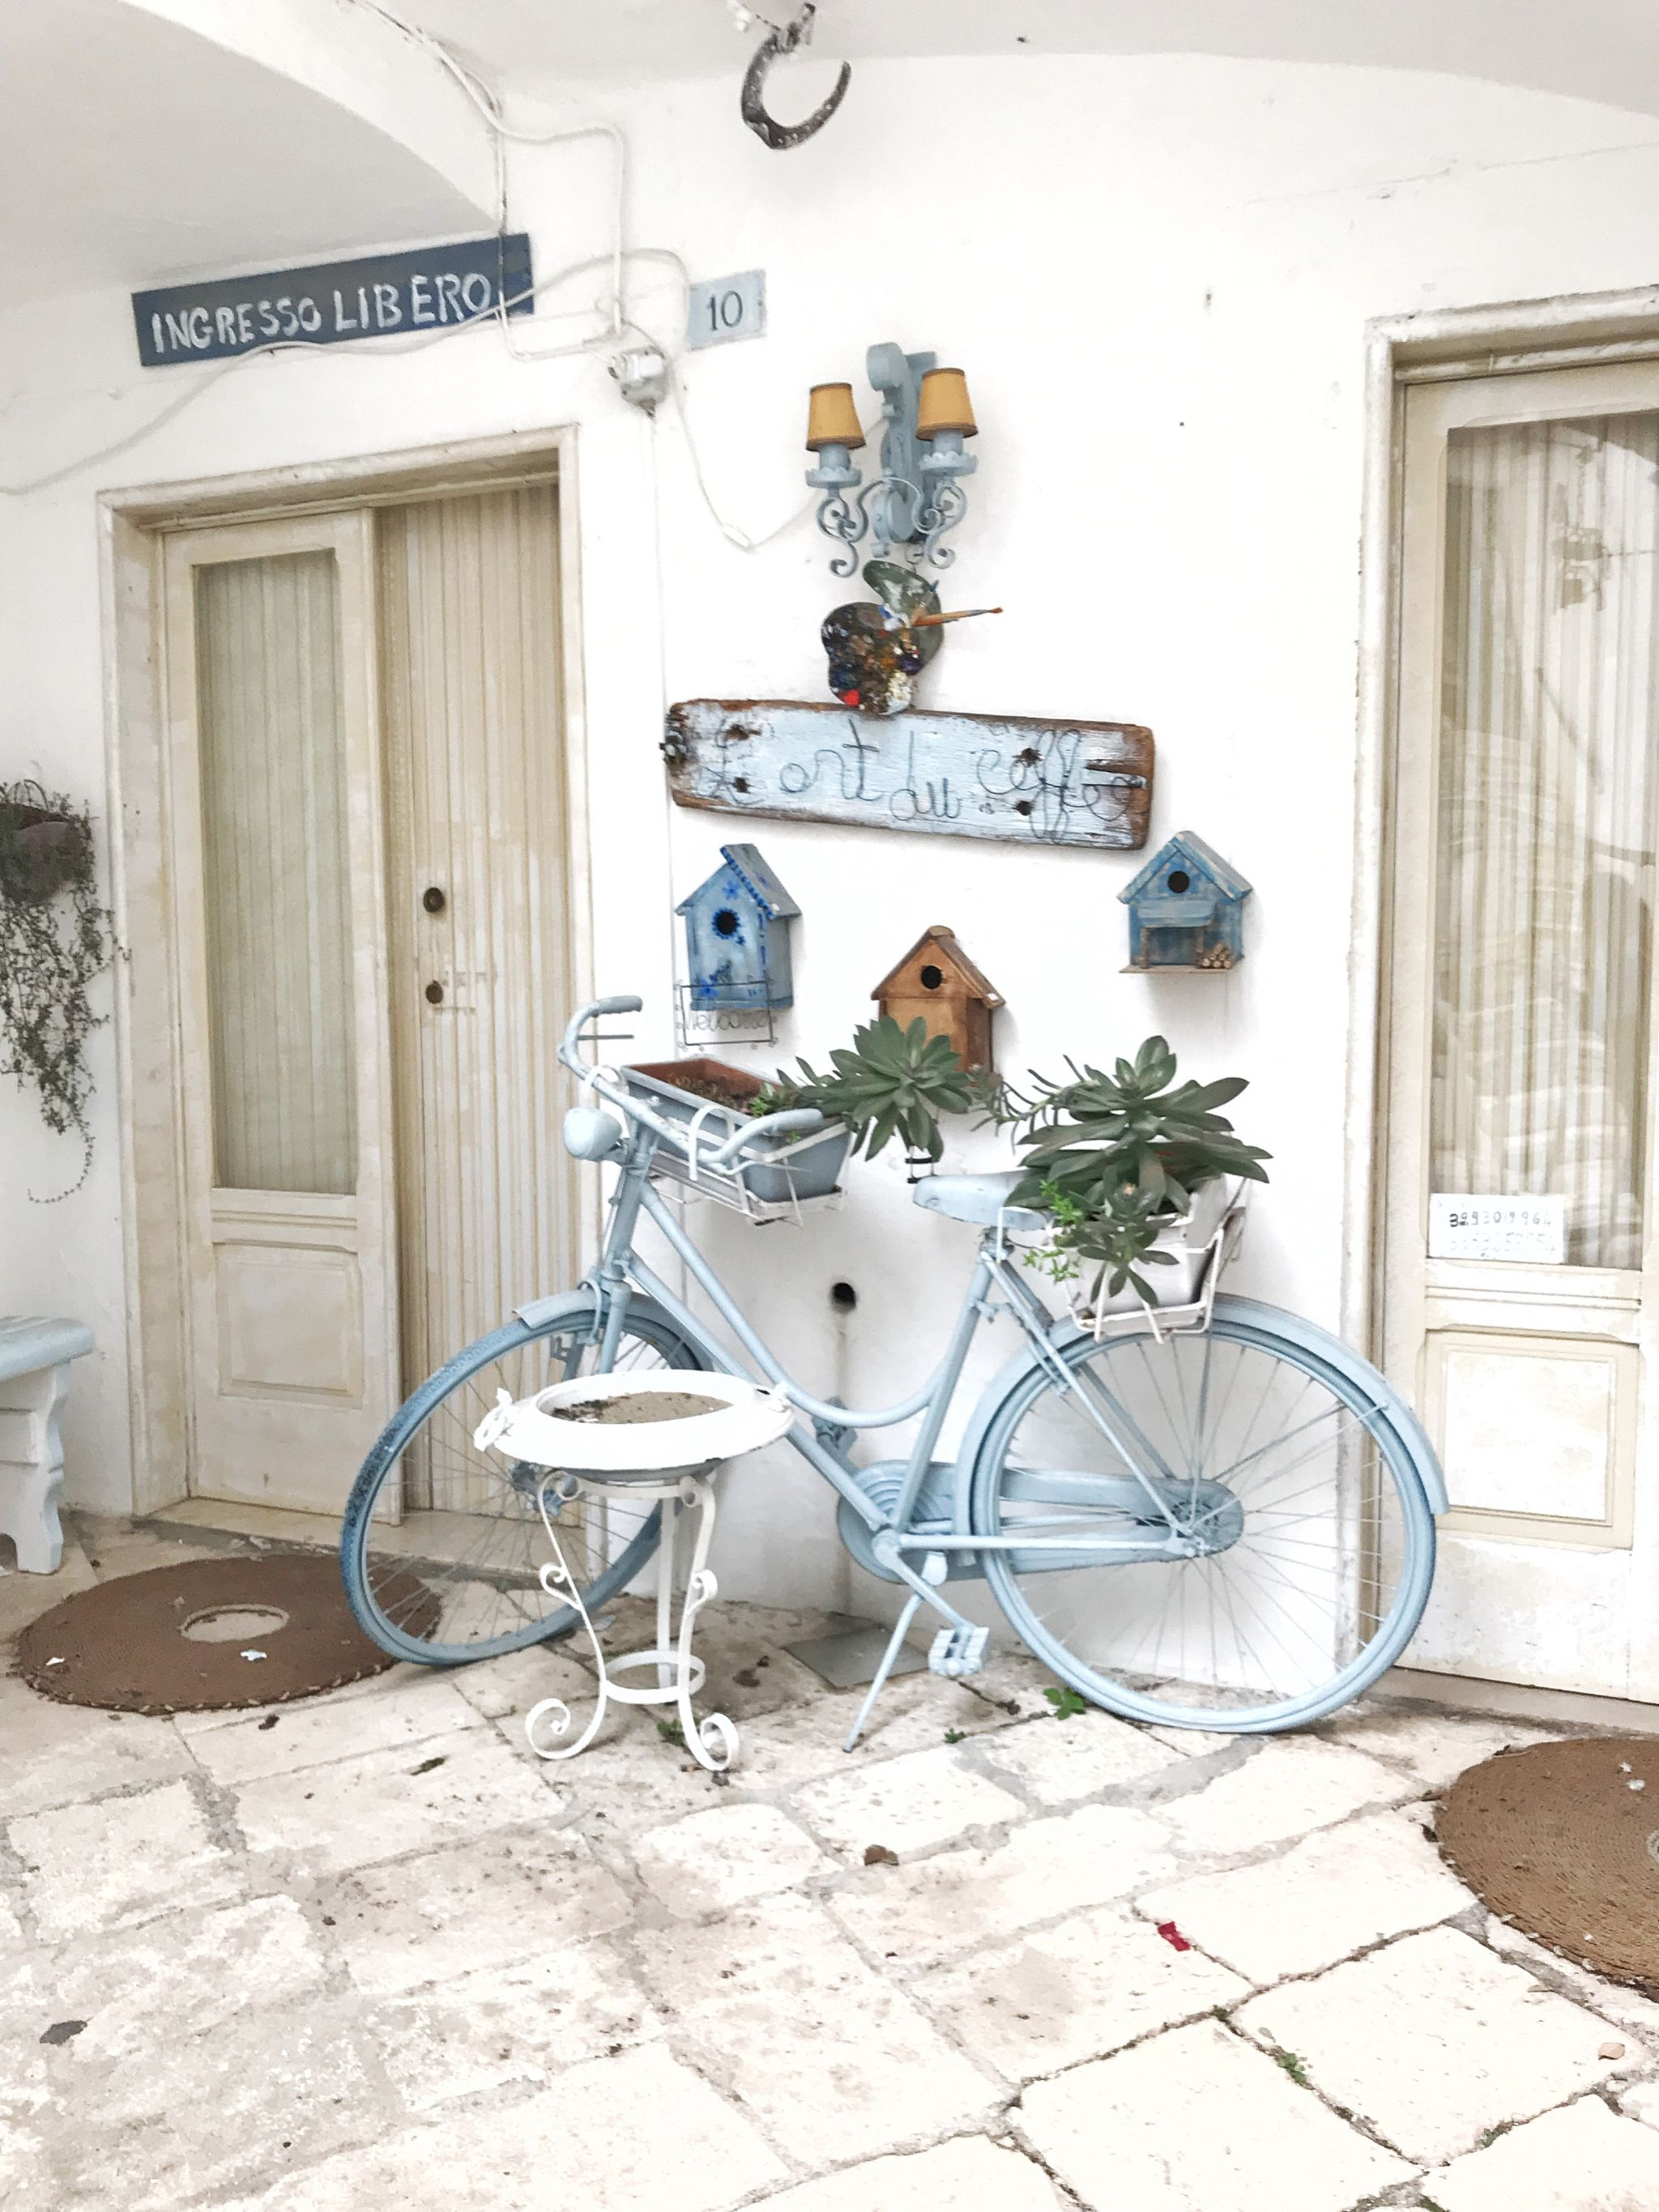 Beautiful bike decor in Locorotondo